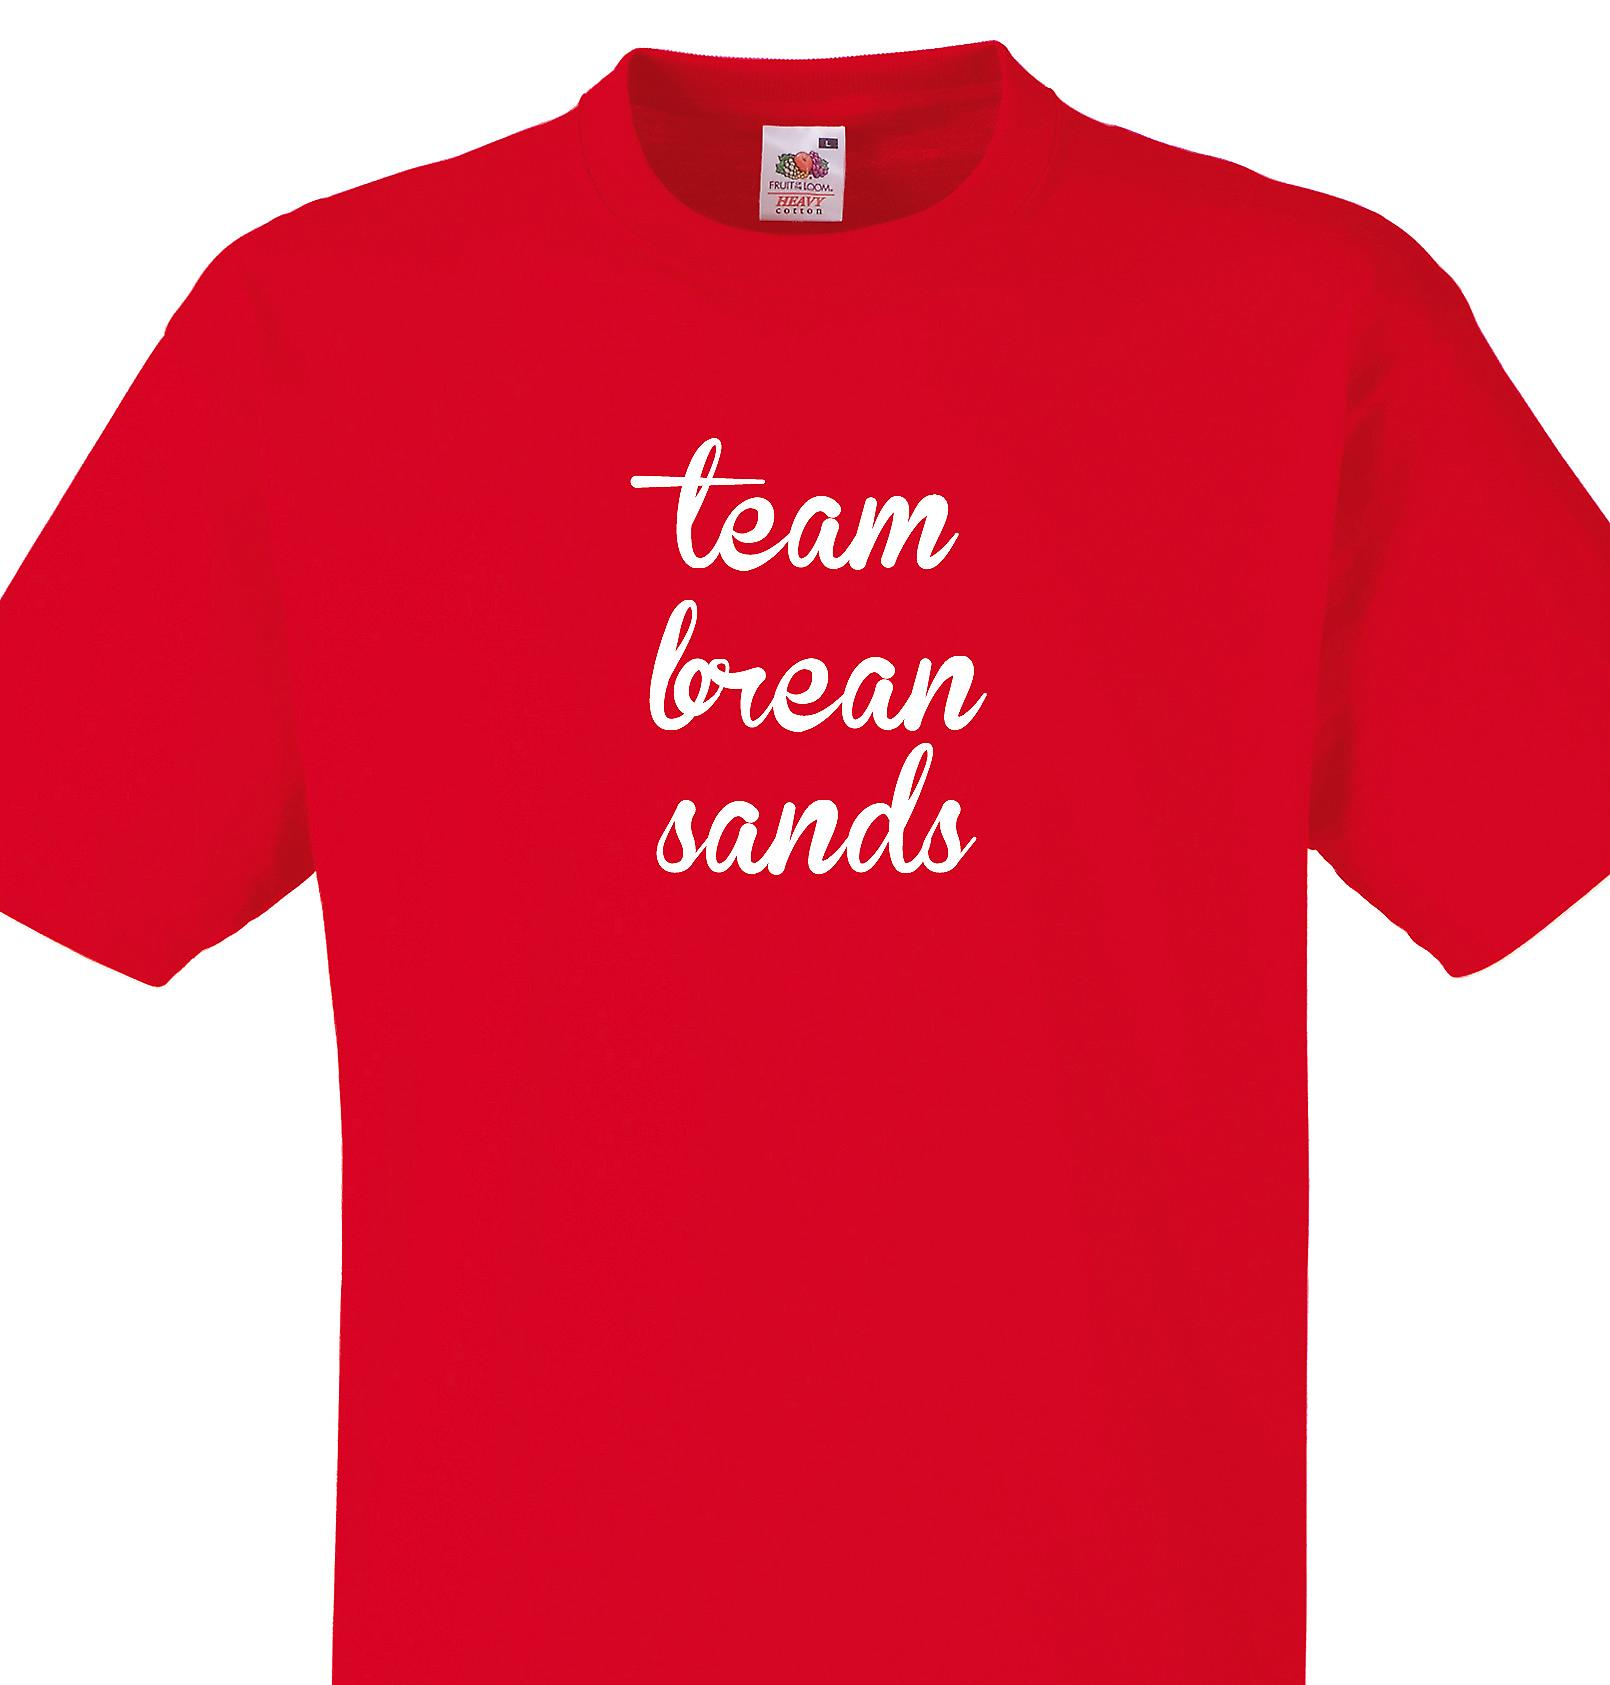 Team Brean sands Red T shirt